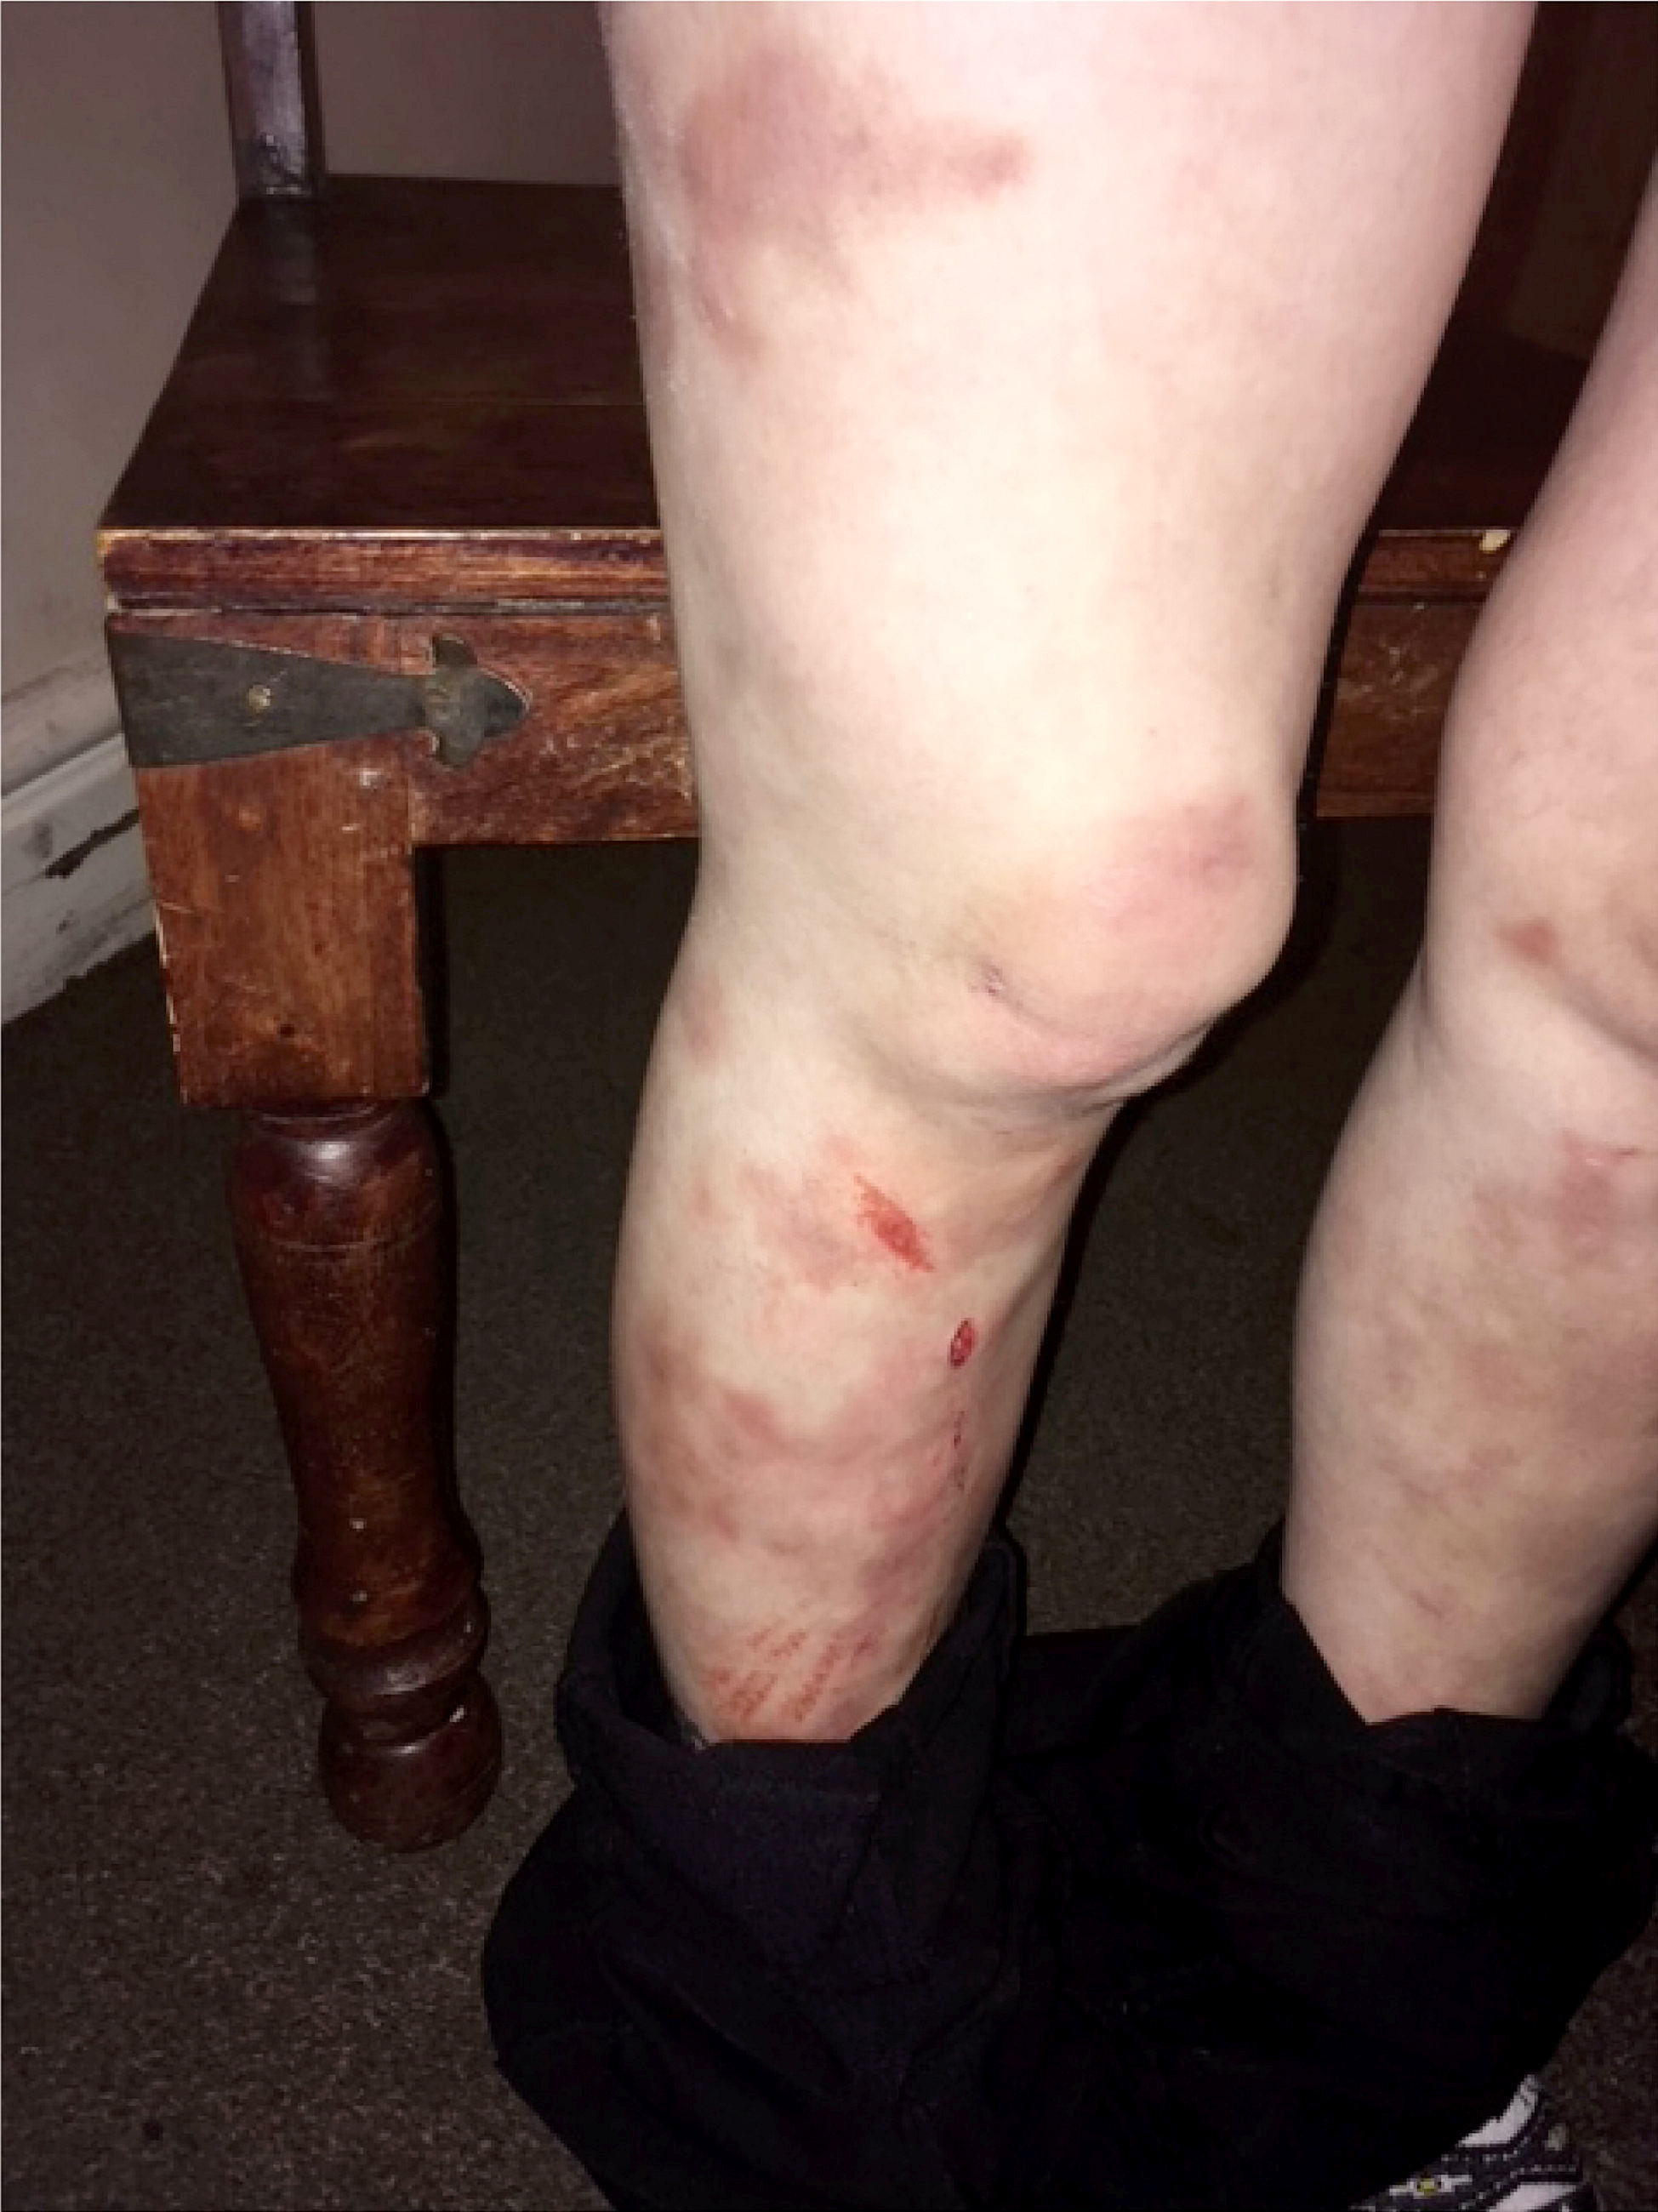 Around 95% of Jodie's body was covered in bruises (Source: South West News Service)